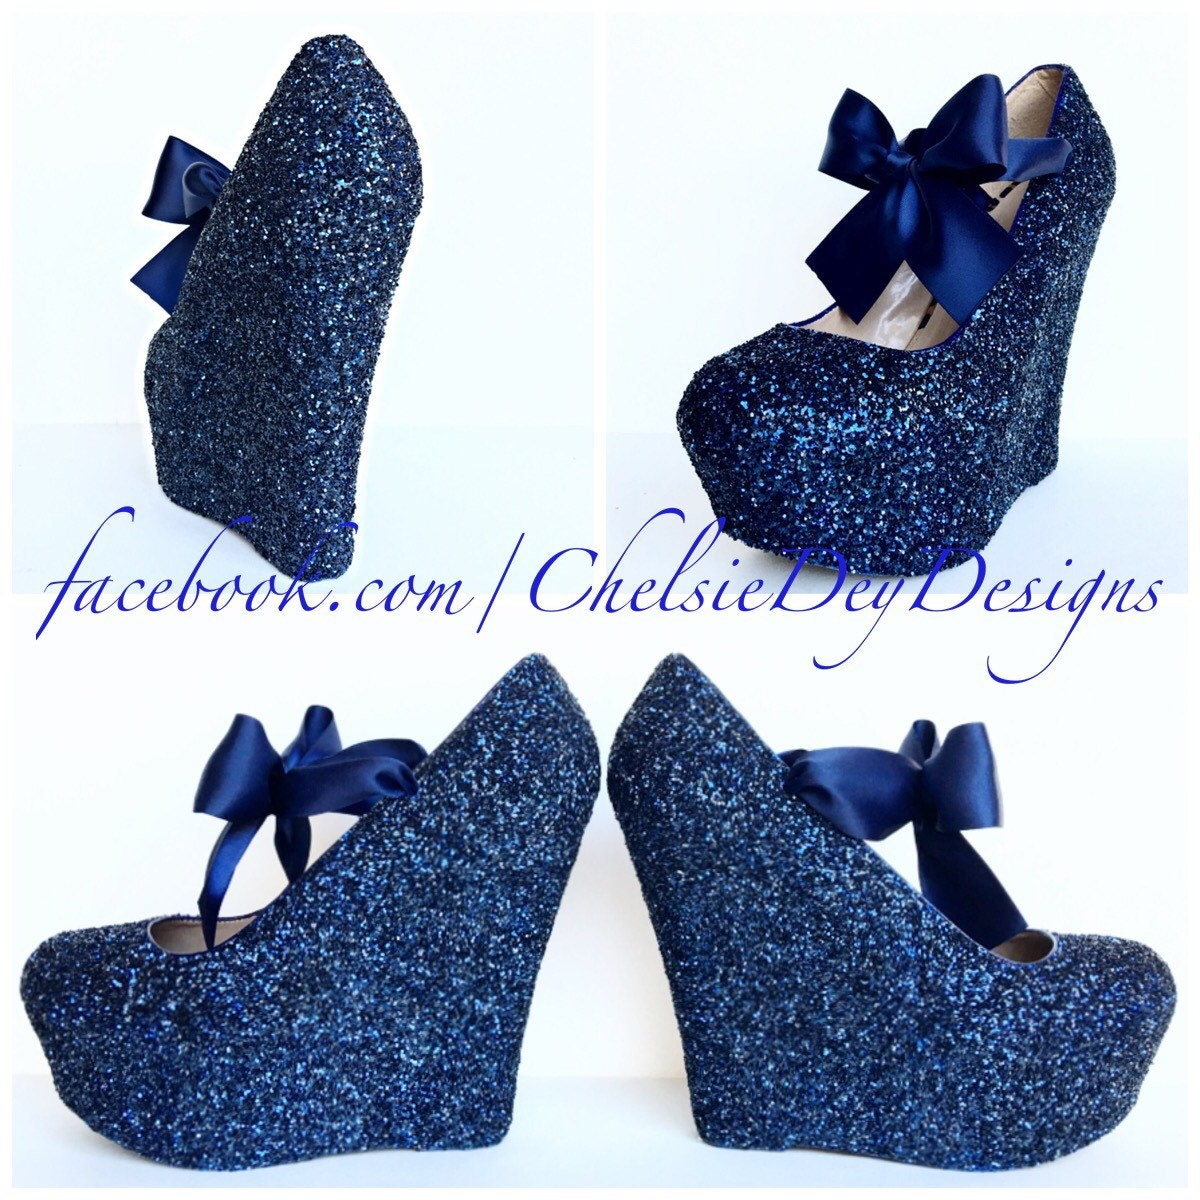 Find great deals on eBay for sparkly wedges. Shop with confidence. Skip to main content. eBay: Womens BENJAMIN ADAMS blue sparkly studs fabric wedge peep toe sz. 8 NEW! US 8. $ List price: Previous Price $ Buy It Now. 67% off. Tell us what you think - opens in new window or tab.